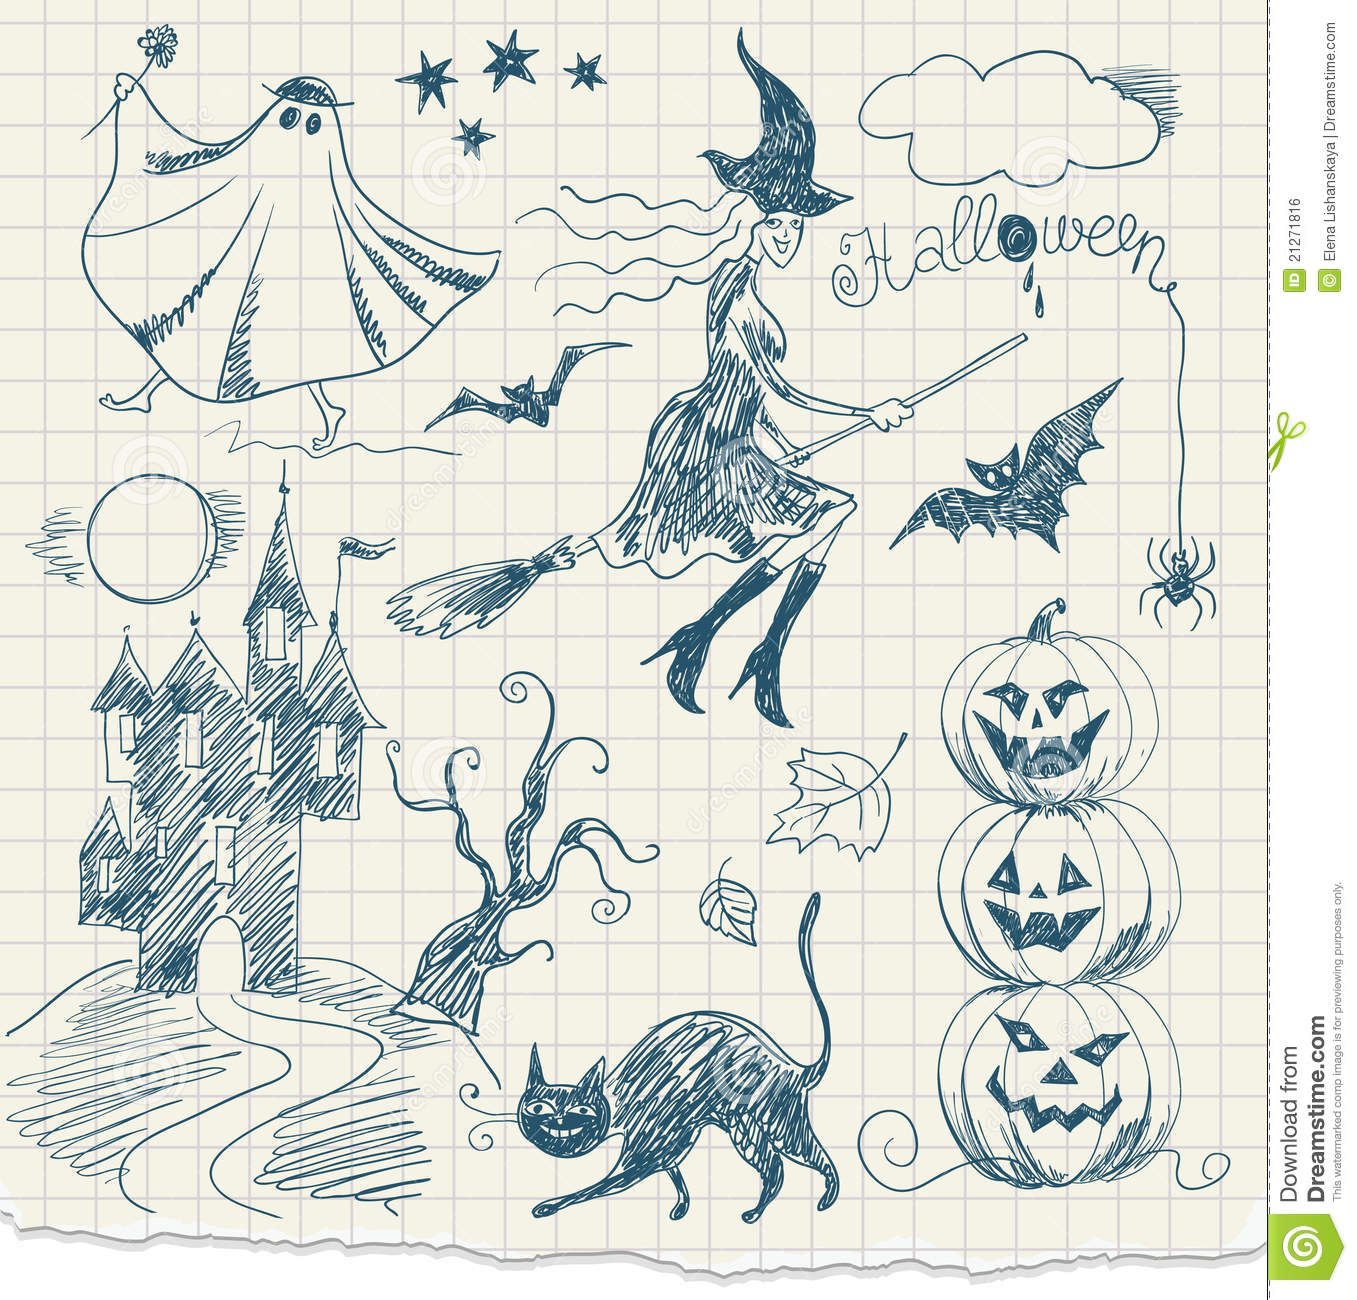 Halloween Black Cat Wallpaper Halloween Doodles Royalty Free Stock Image Image 21271816